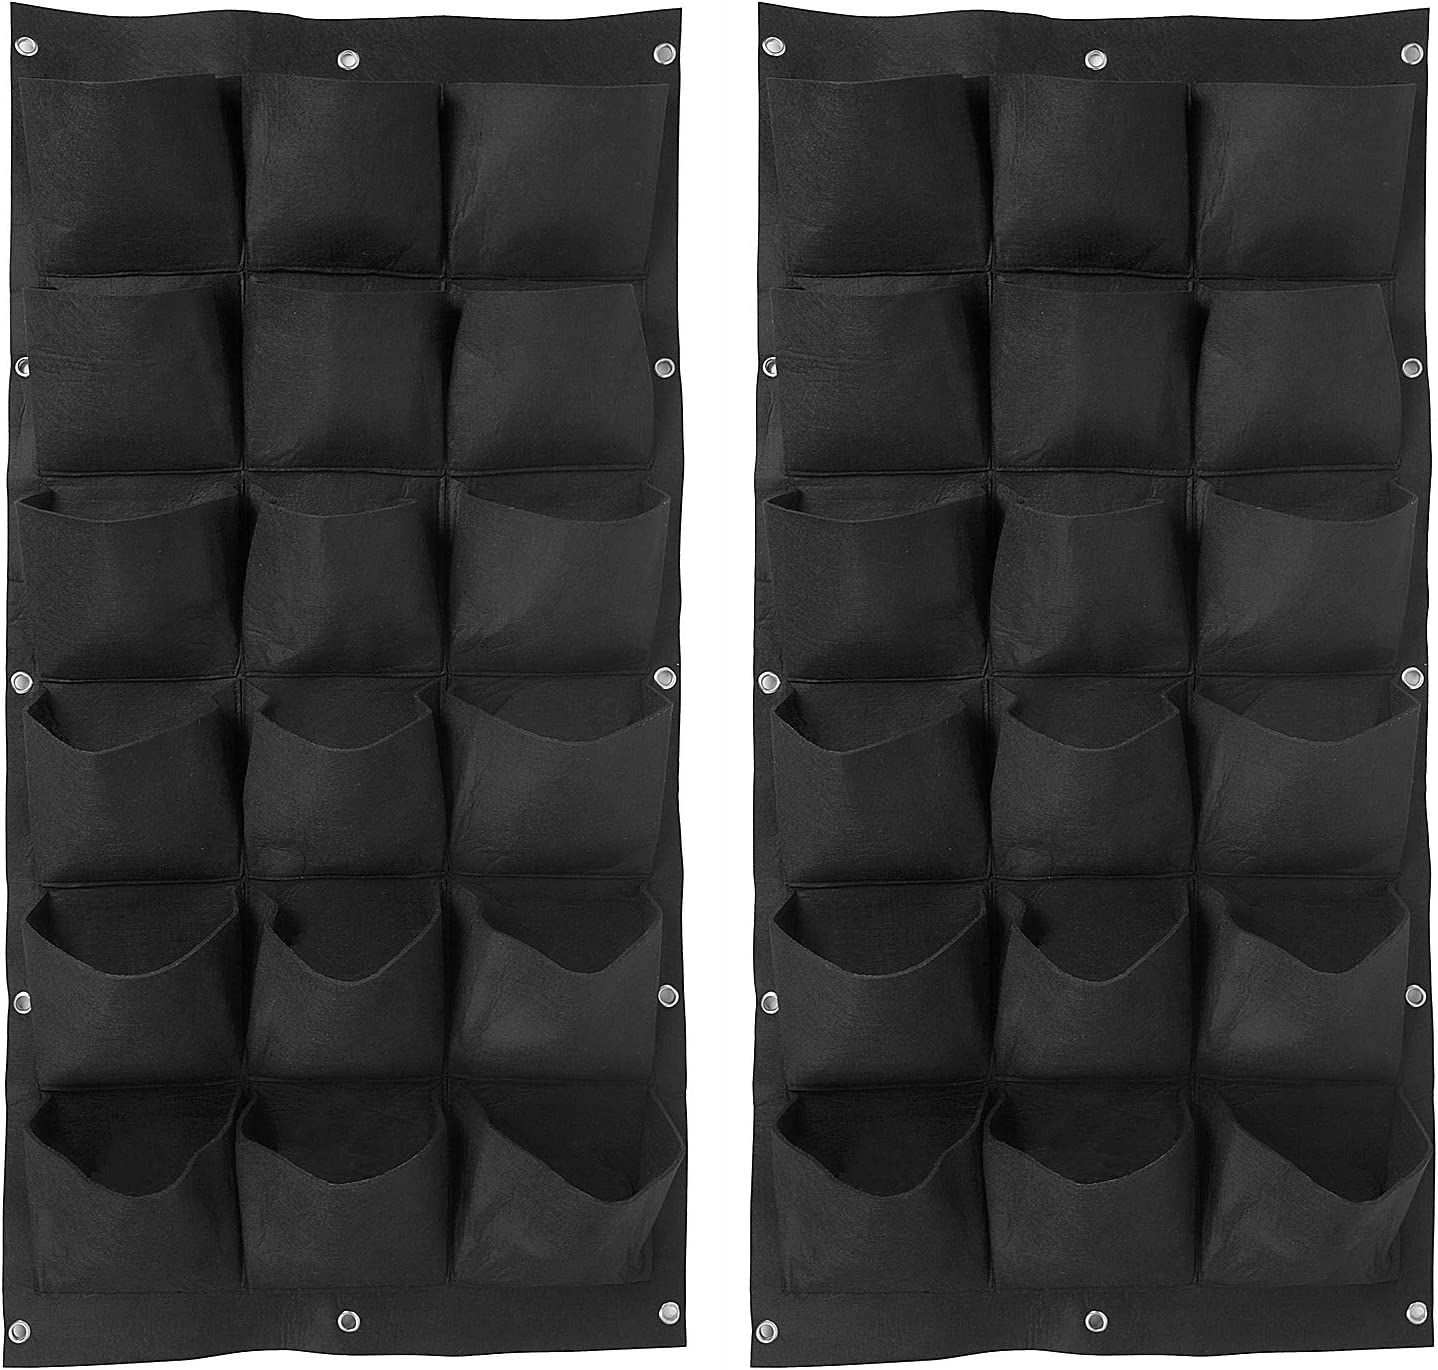 ZOENHOU 2 Pack Total Free shipping 36 Roomy Vertical Garden Max 57% OFF W Pockets Planter